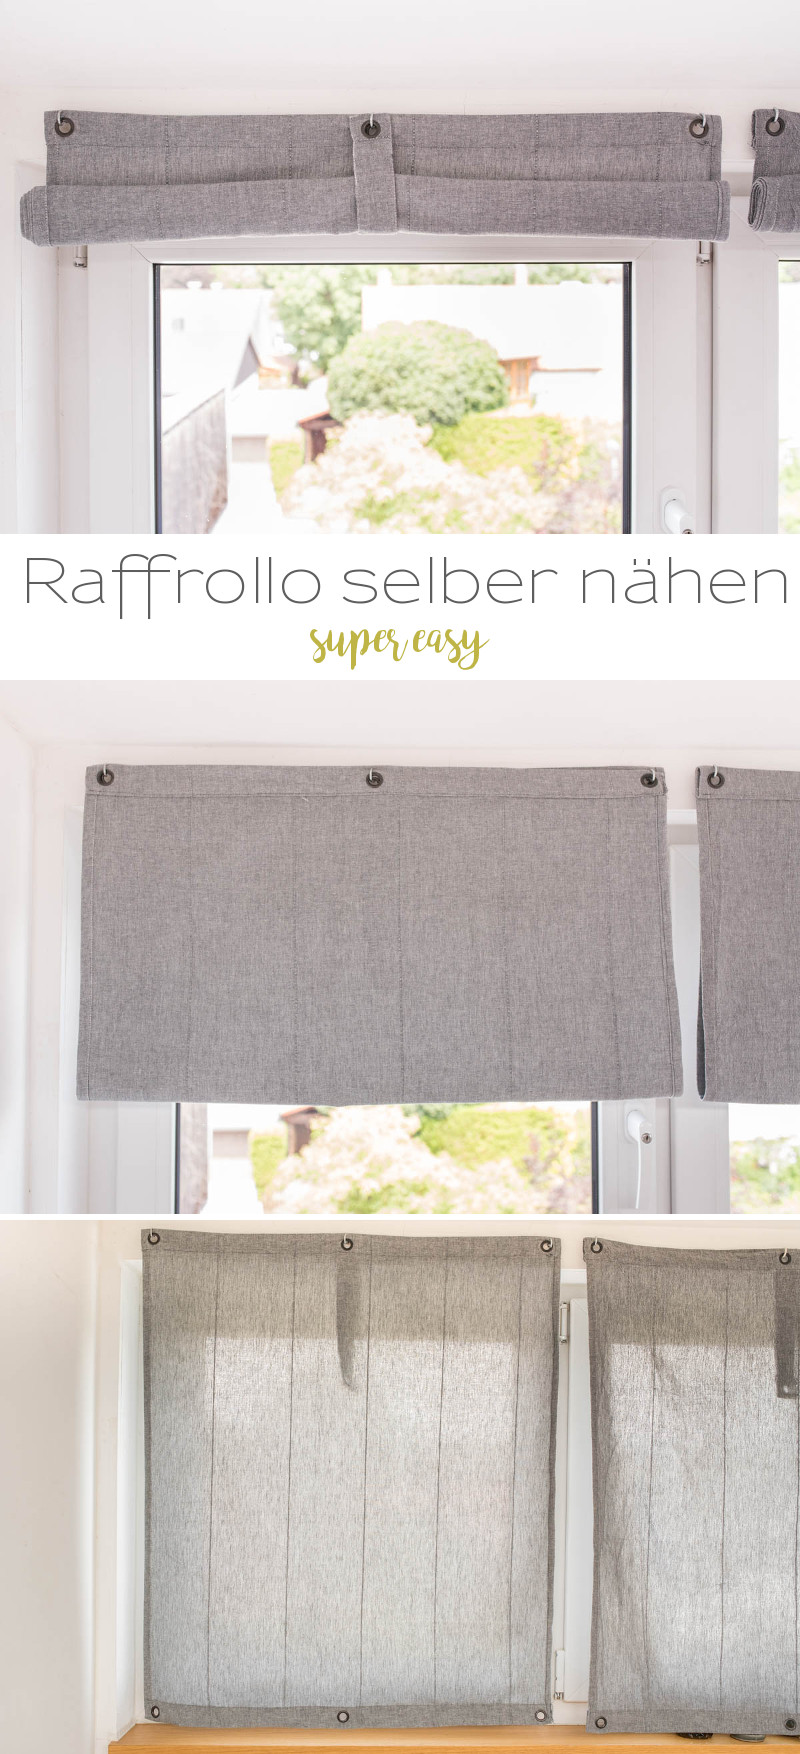 raffrollo lang simple wohnideen erstaunlich fenster sichtschutz rollo bambus holz rollo. Black Bedroom Furniture Sets. Home Design Ideas